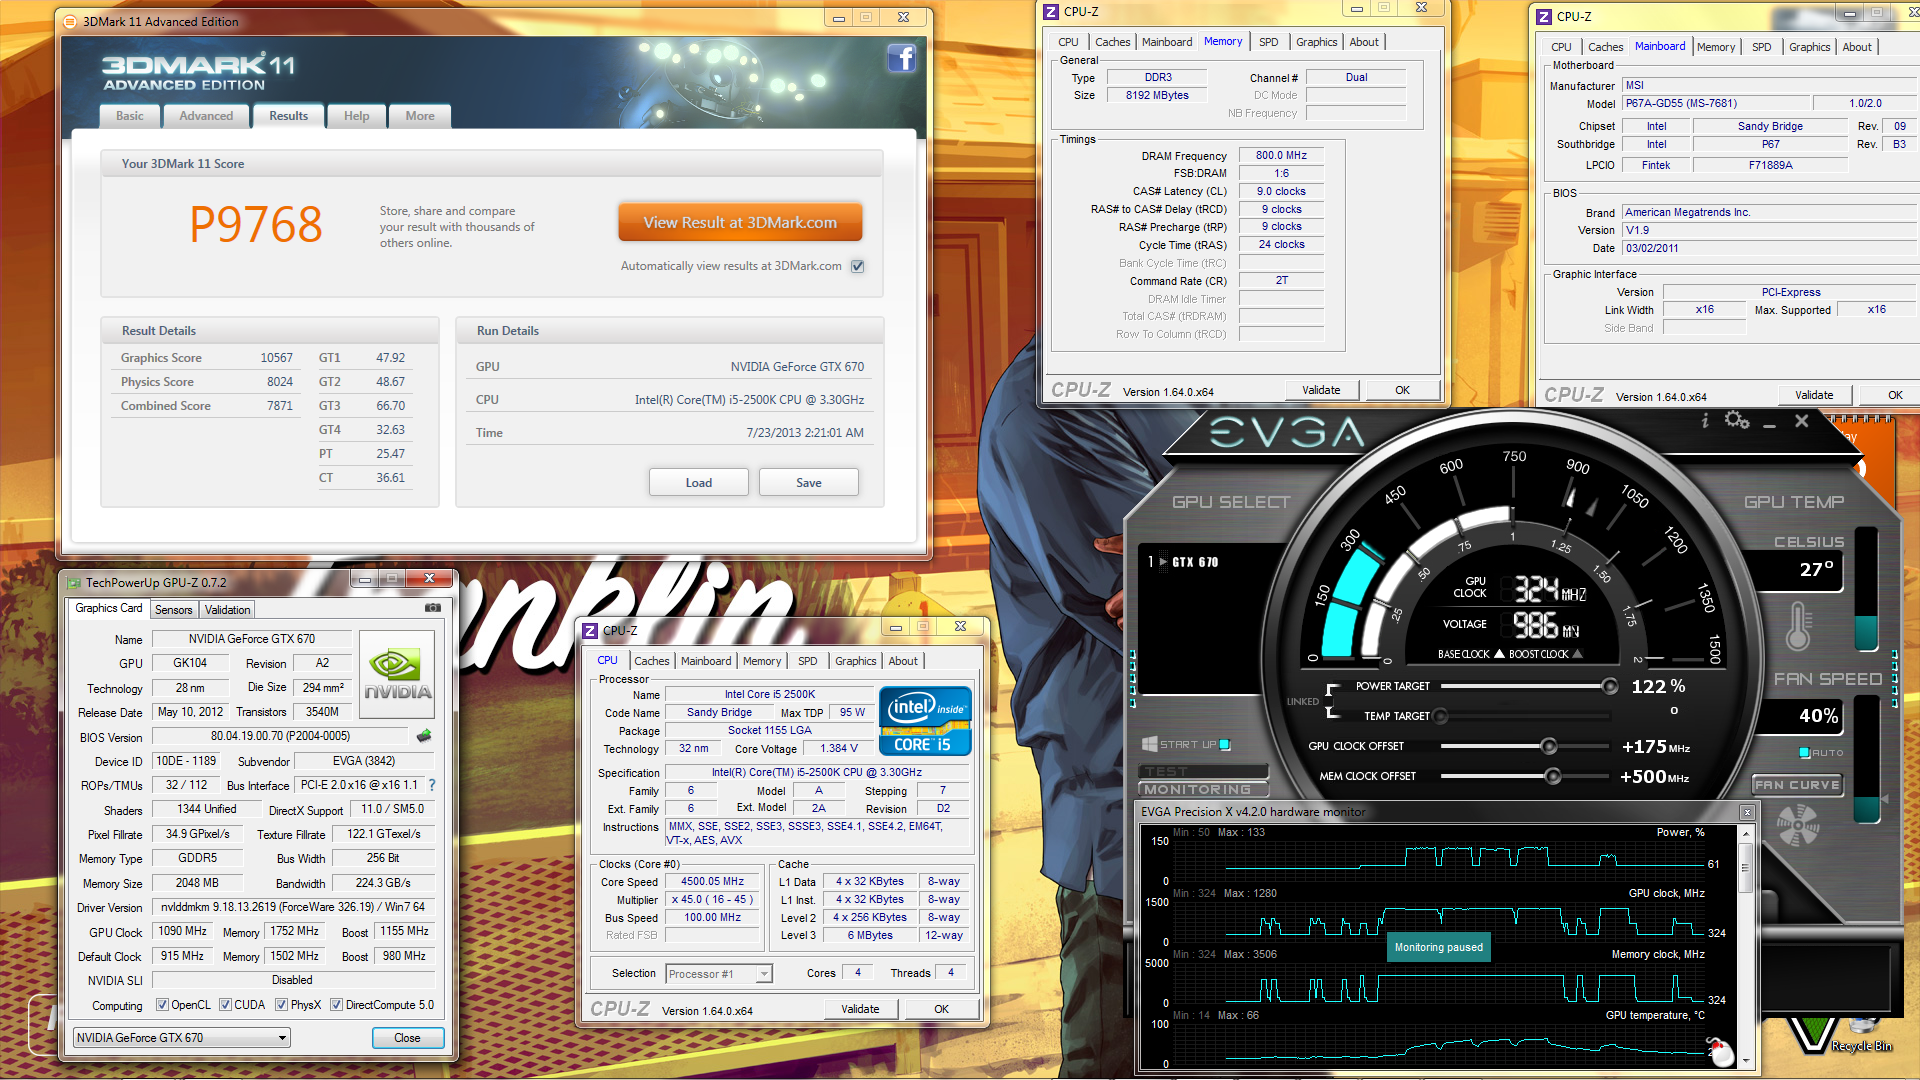 3d mark 11 gtx670 +175 +500@326.19 - 2500k 4500 - 8gb 1600 c9.png